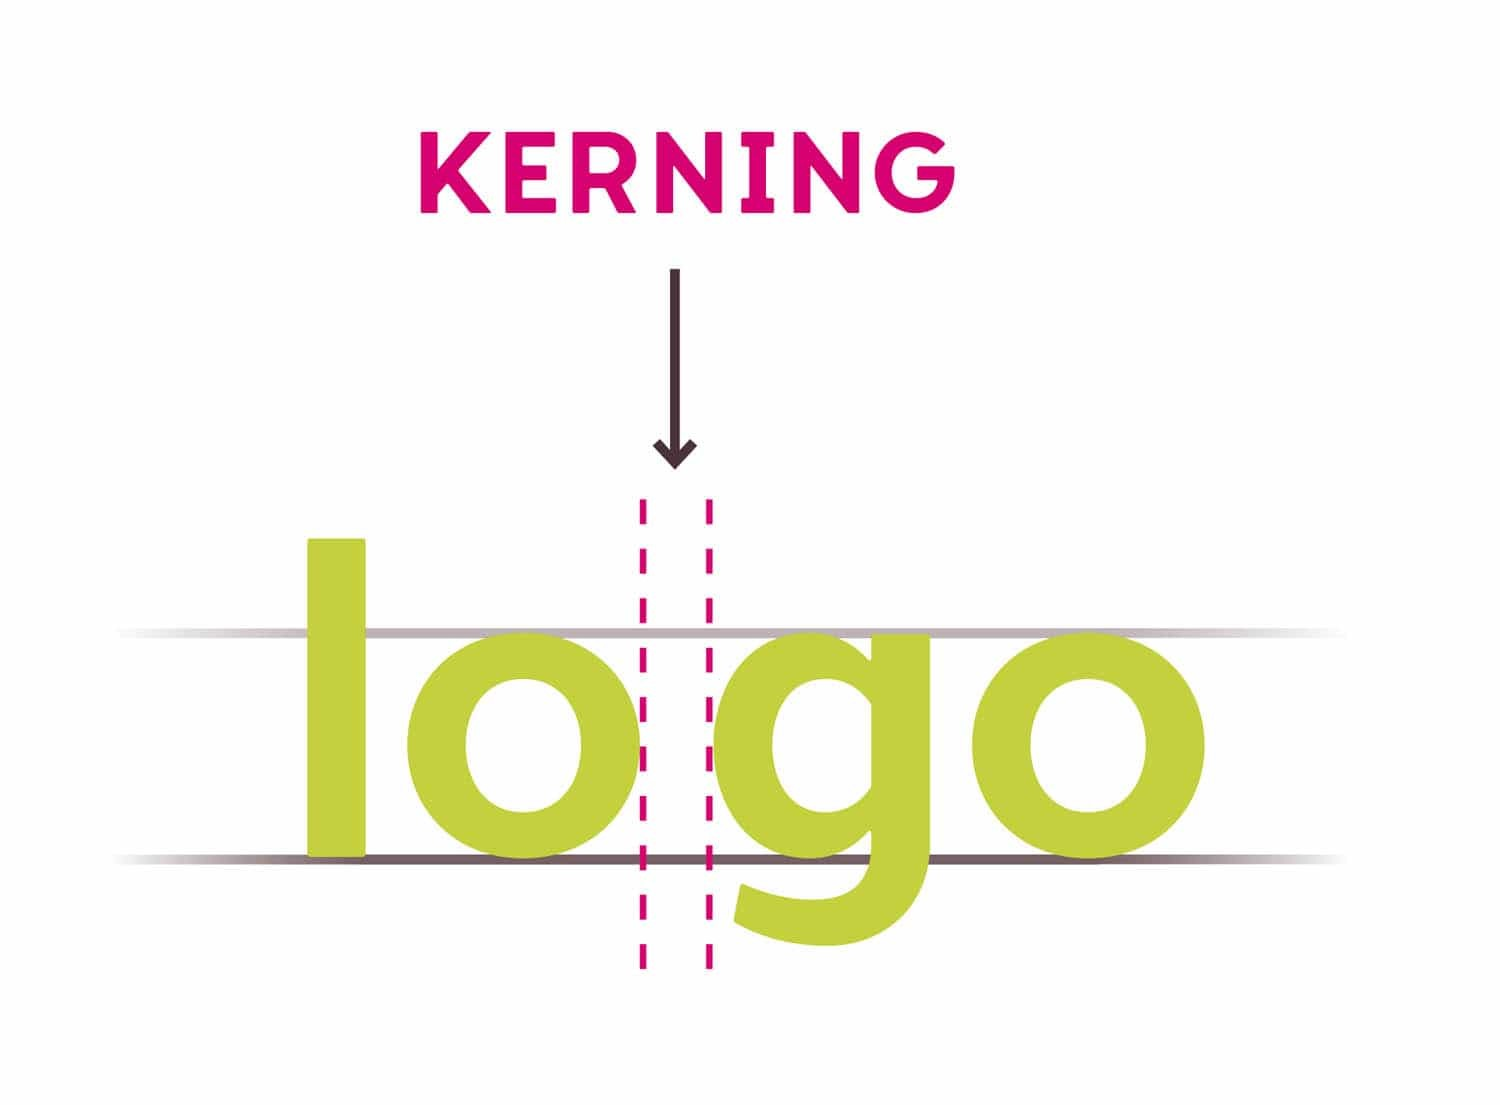 Letter Kerning - 5 Best Hierarchal Typographic Techniques For Beginners